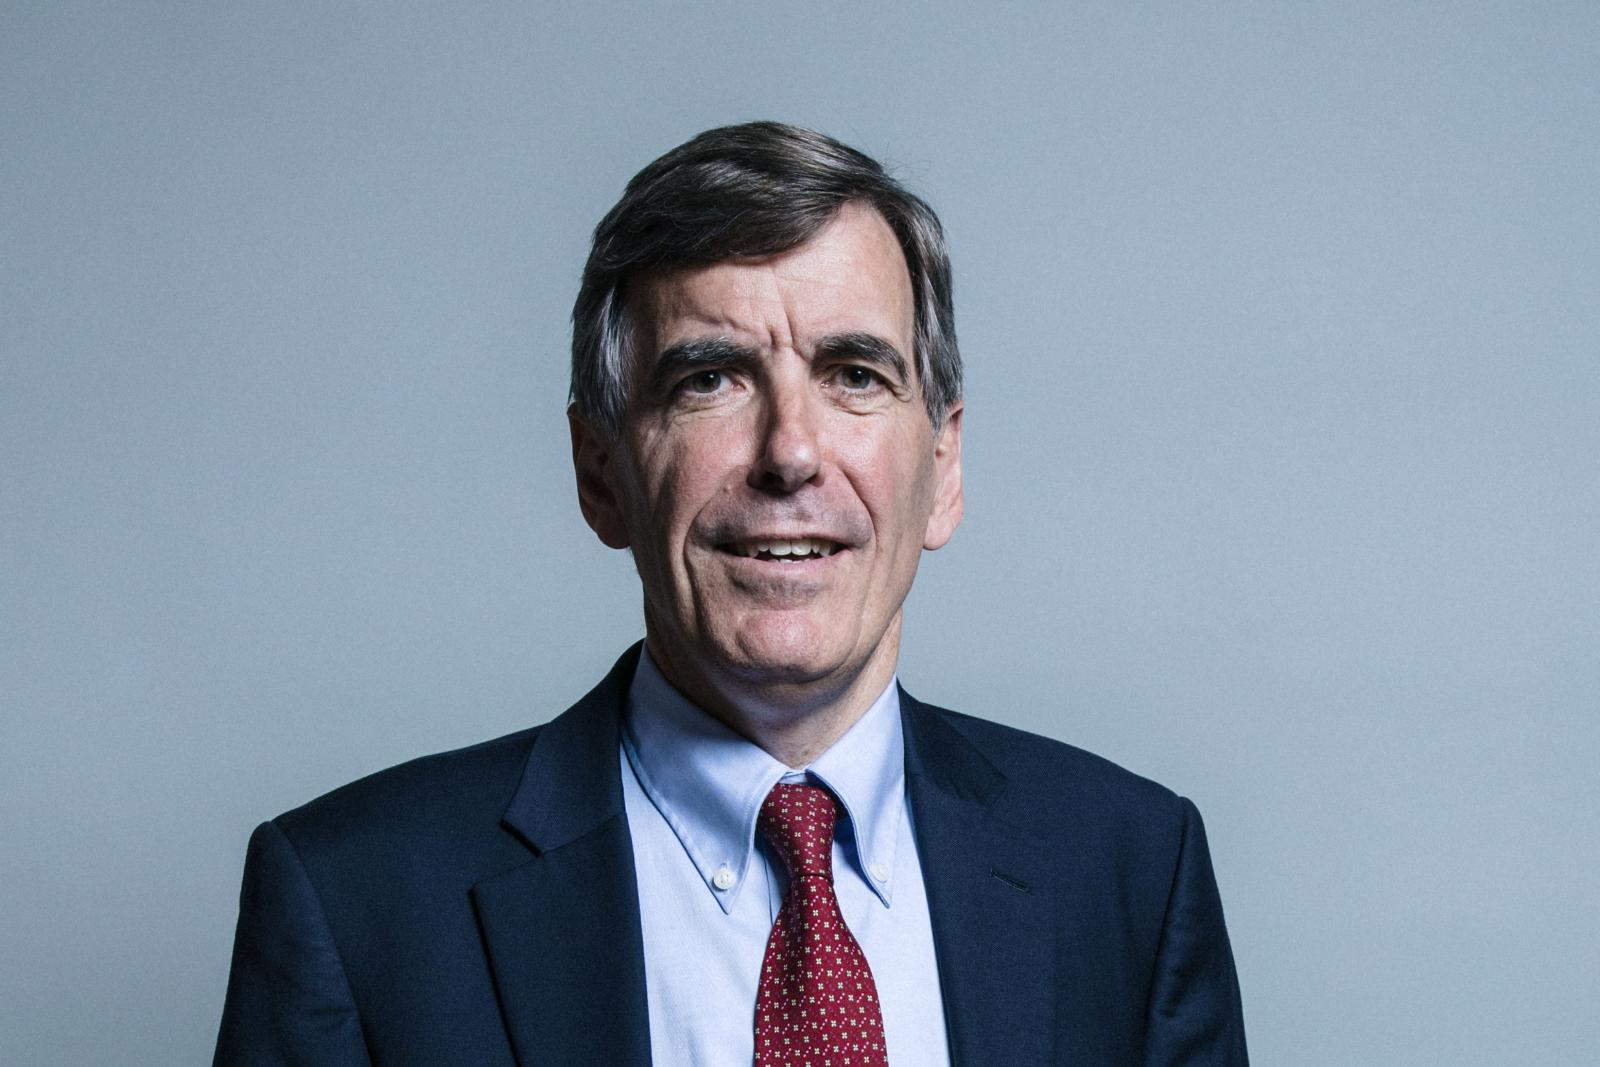 David Rutley. Photo credit: UK Parliament